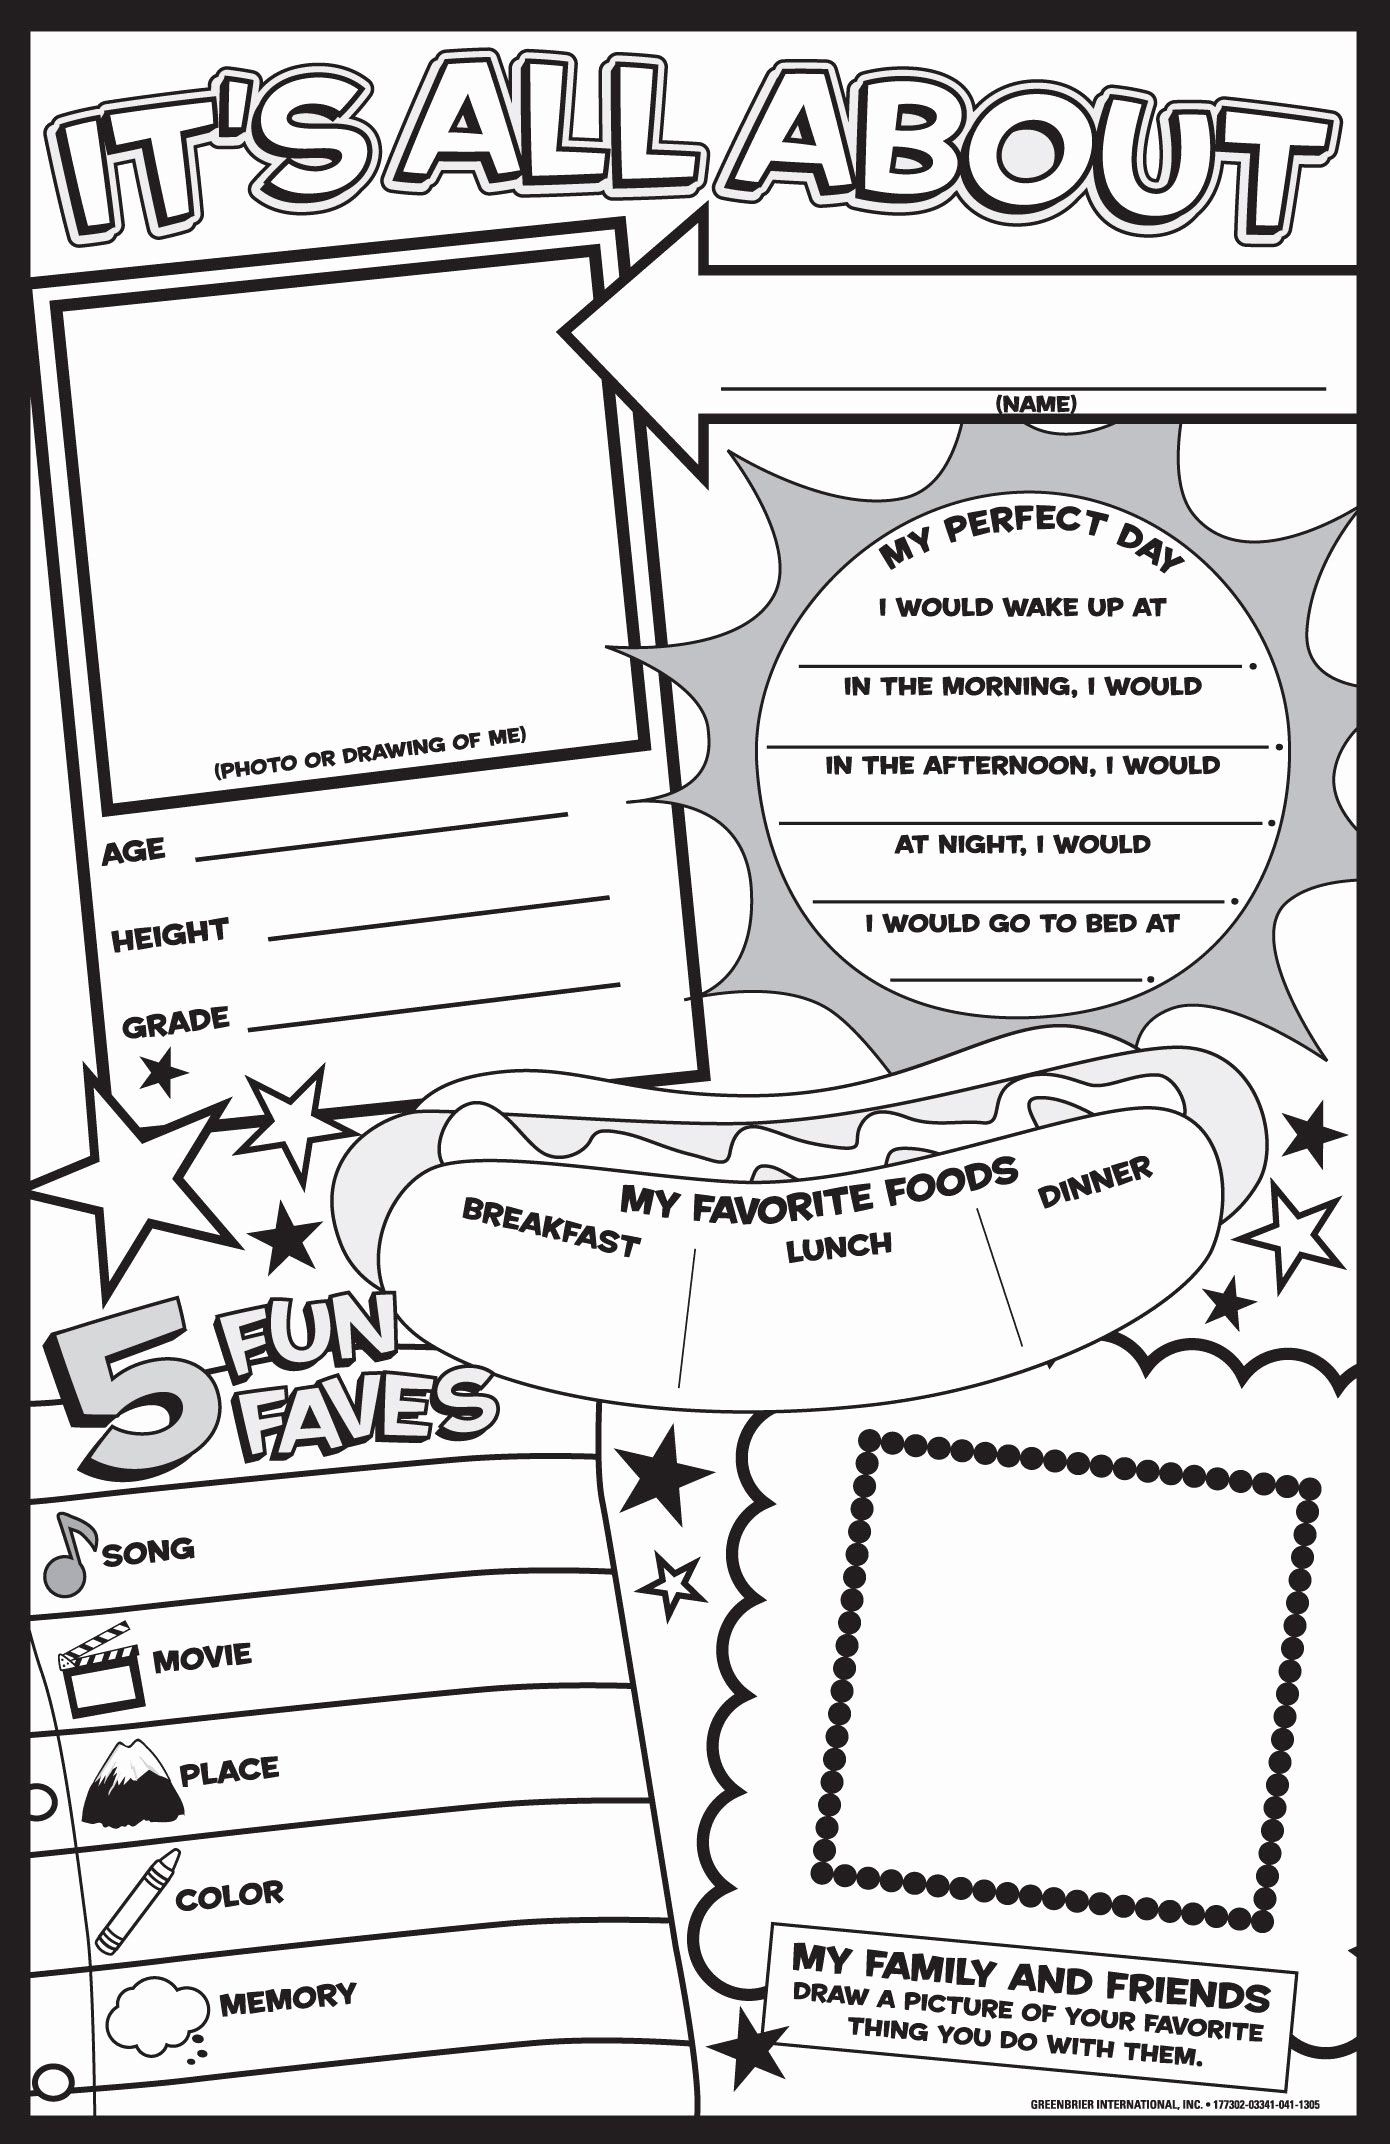 All About Me Worksheet Inspirational Get to Know Me Ideas Allaboutmeposter